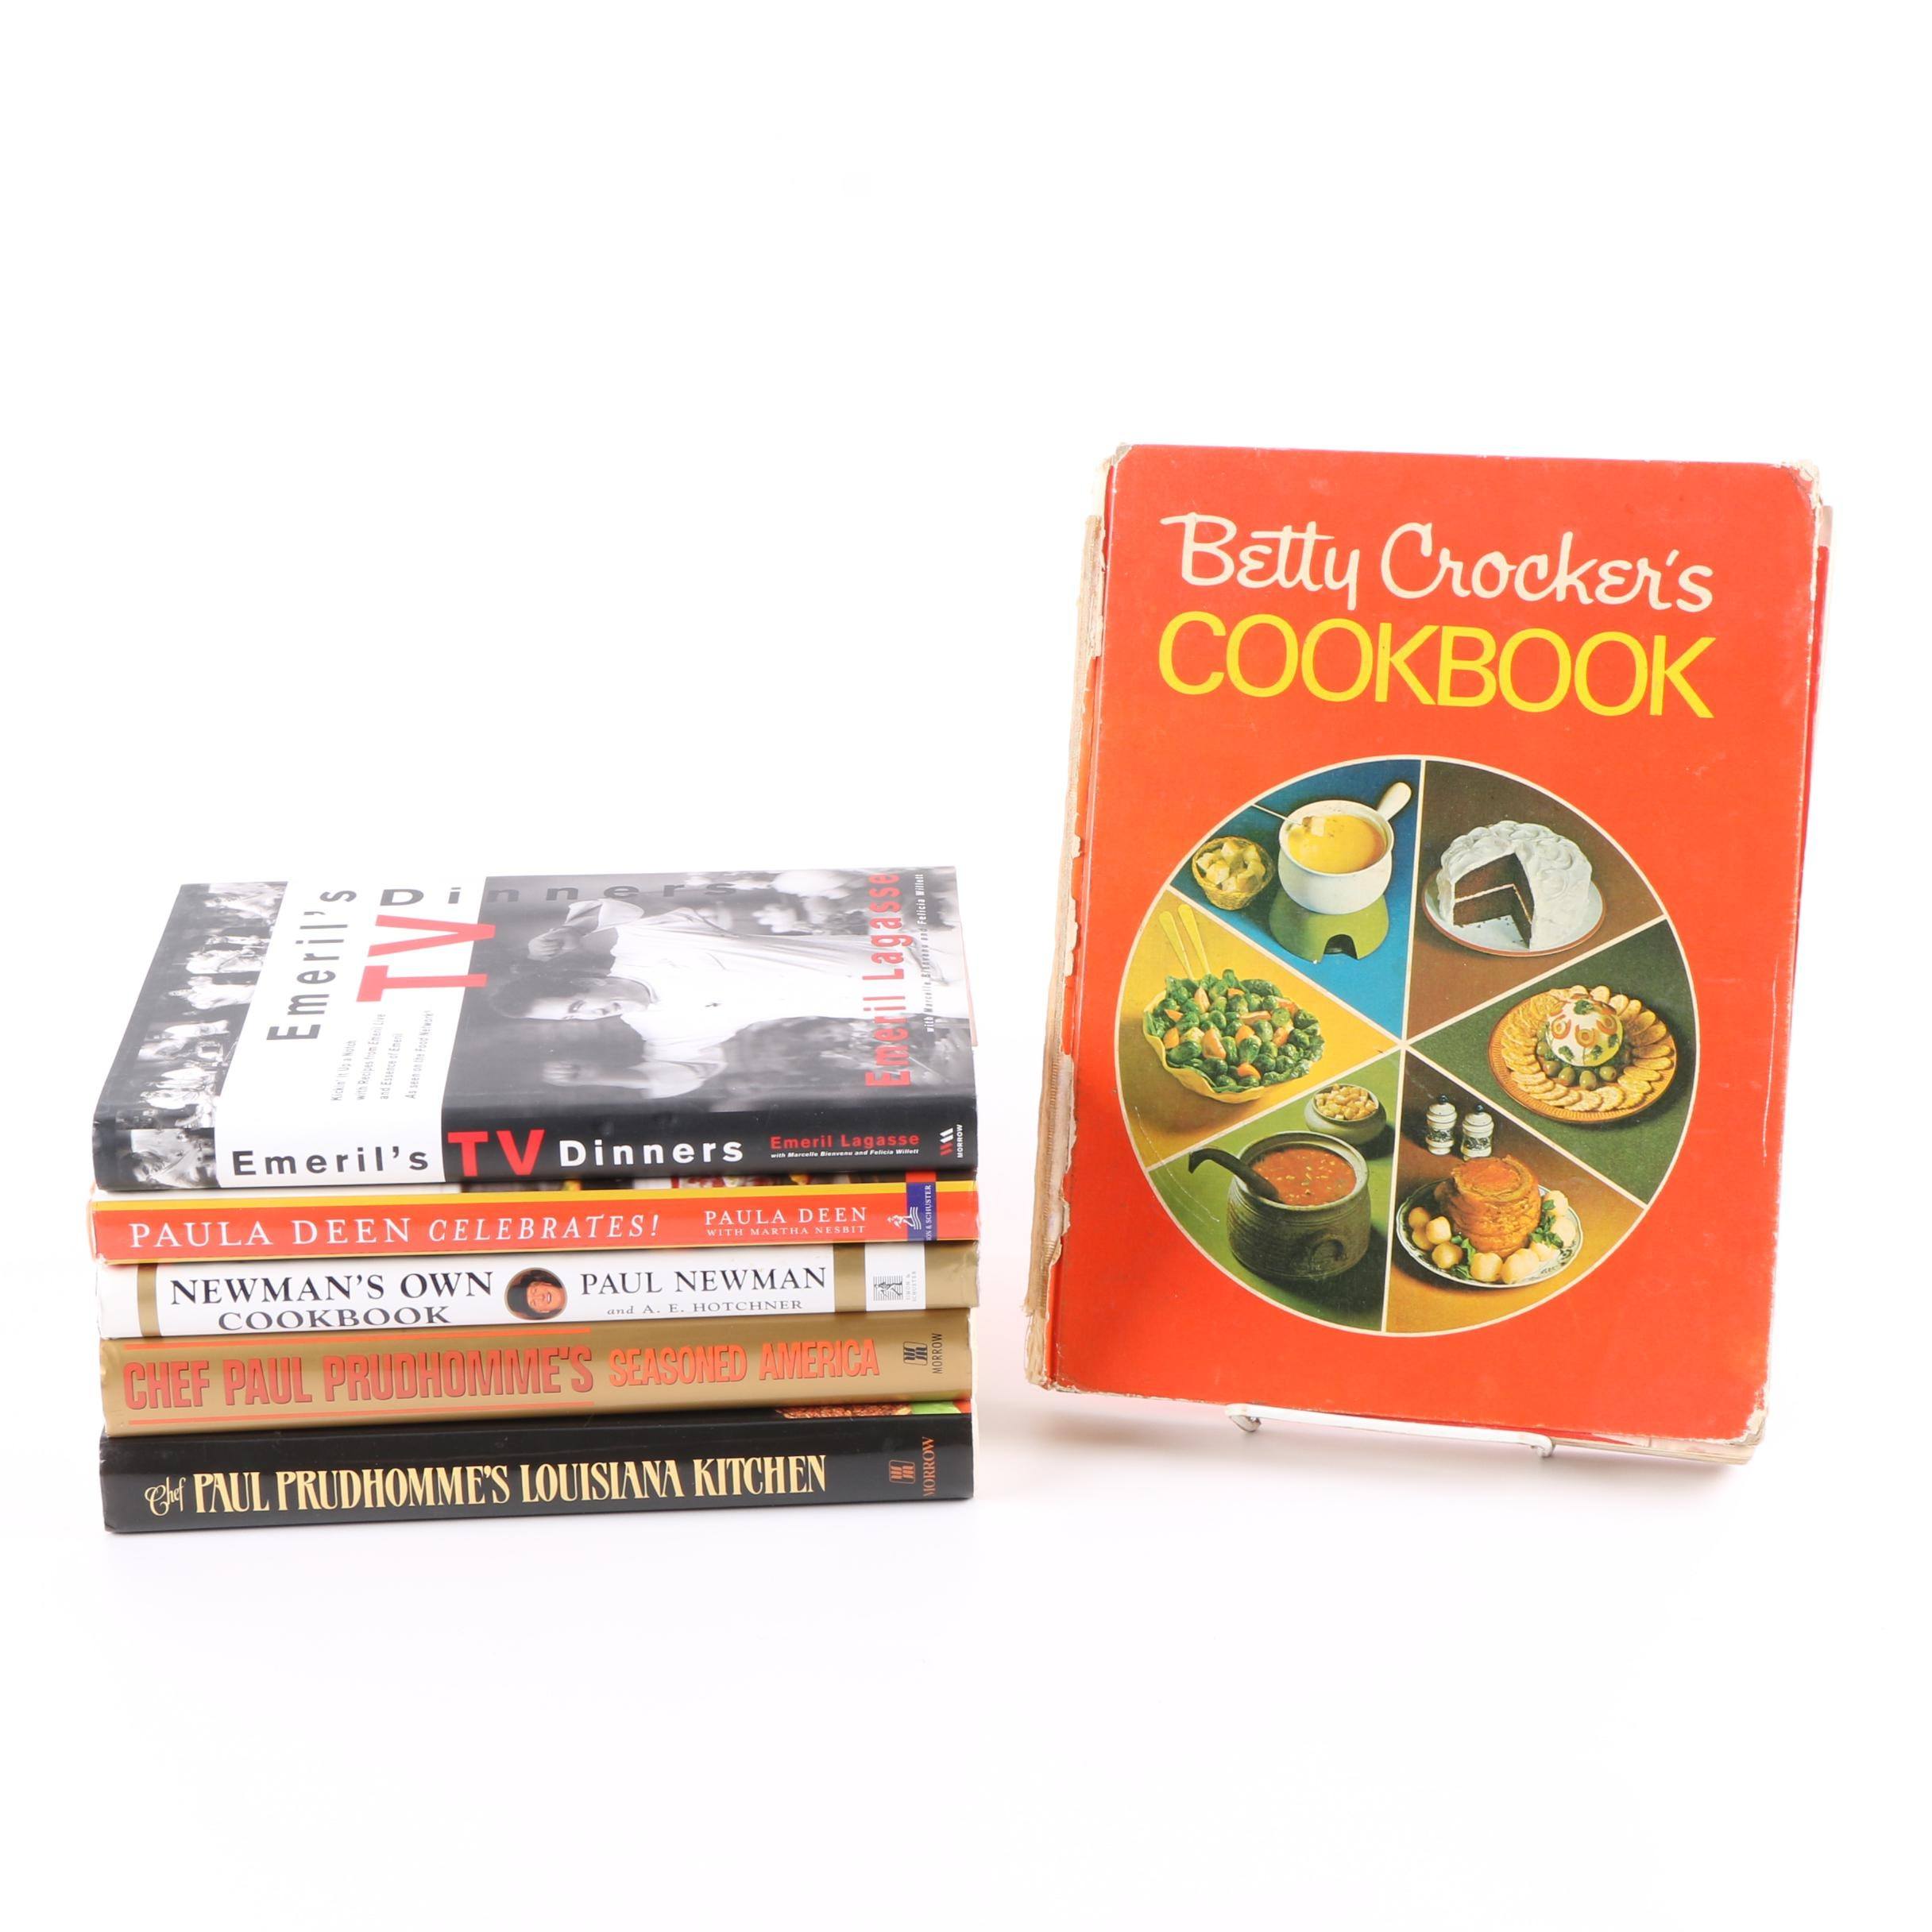 """1991 """"Chef Paul Prudhomme's Seasoned America"""" and Other Cookbooks"""